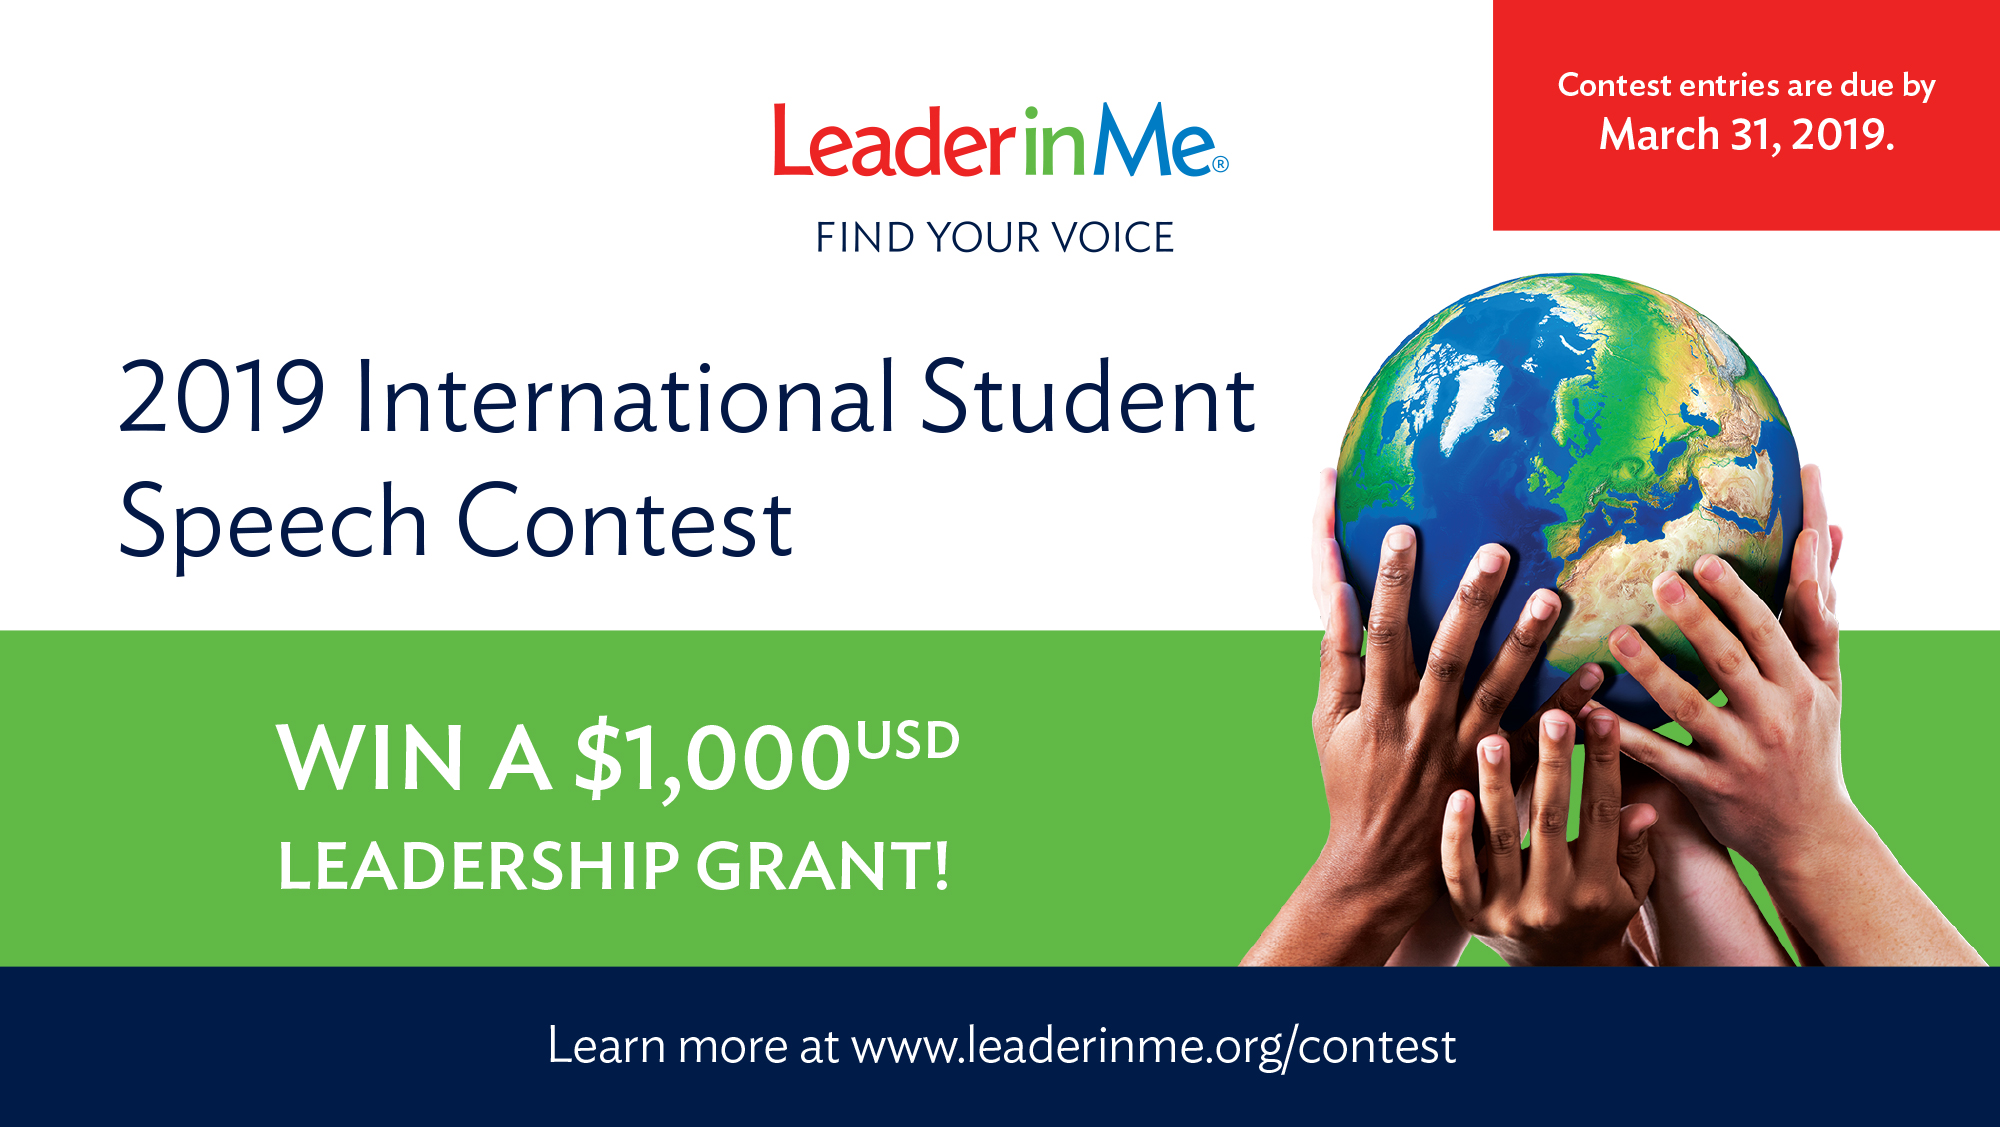 Leader in Me's 4th Annual International Student Speech Contest